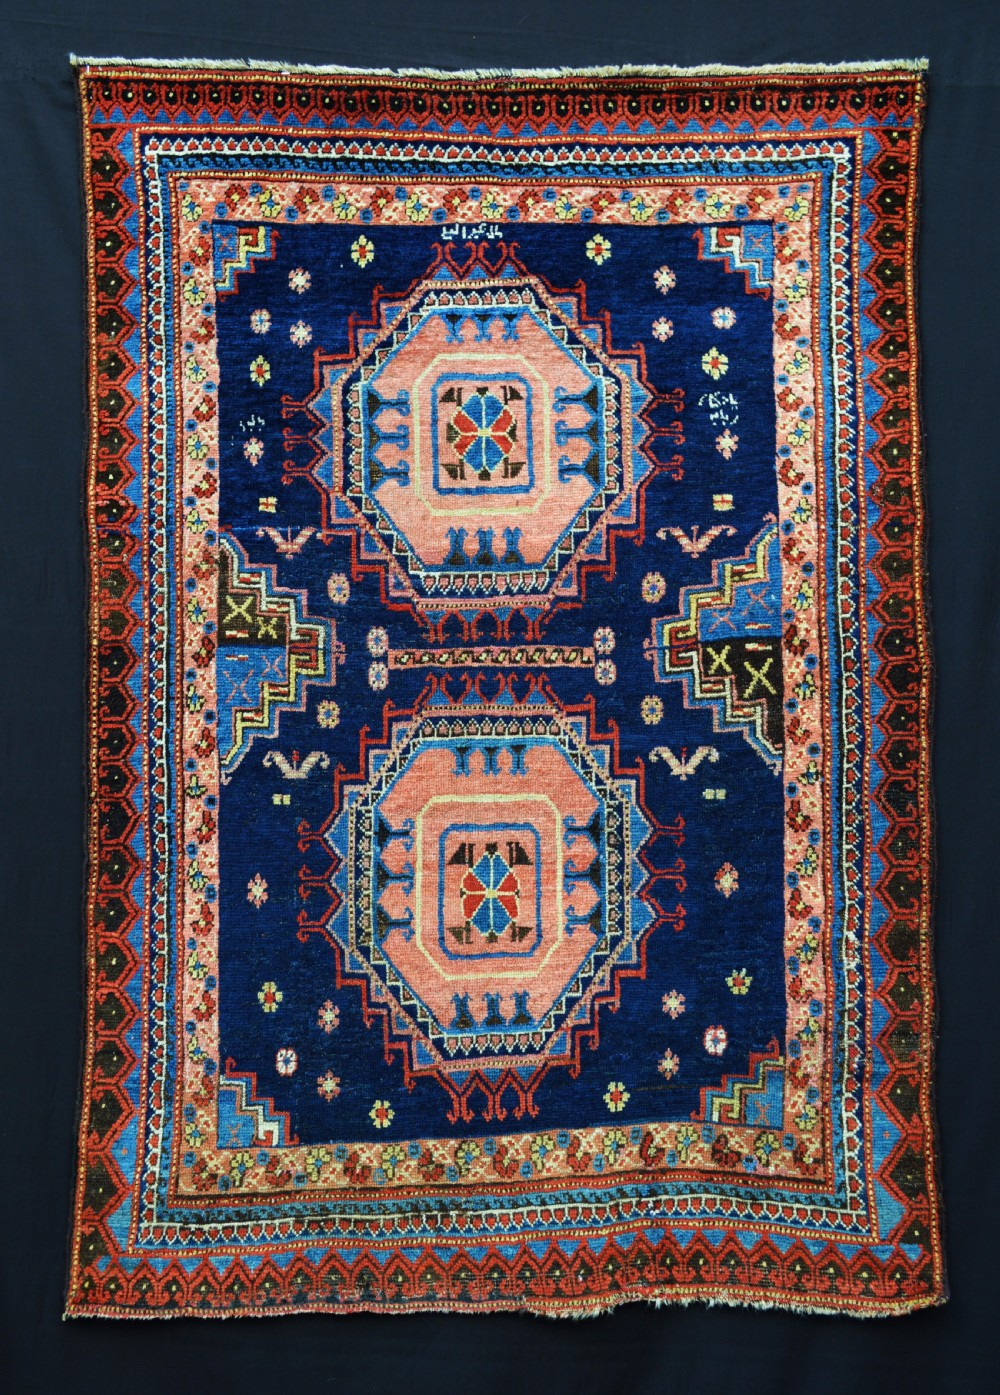 rare antique afshar tribal rug khorassan region northeast persia